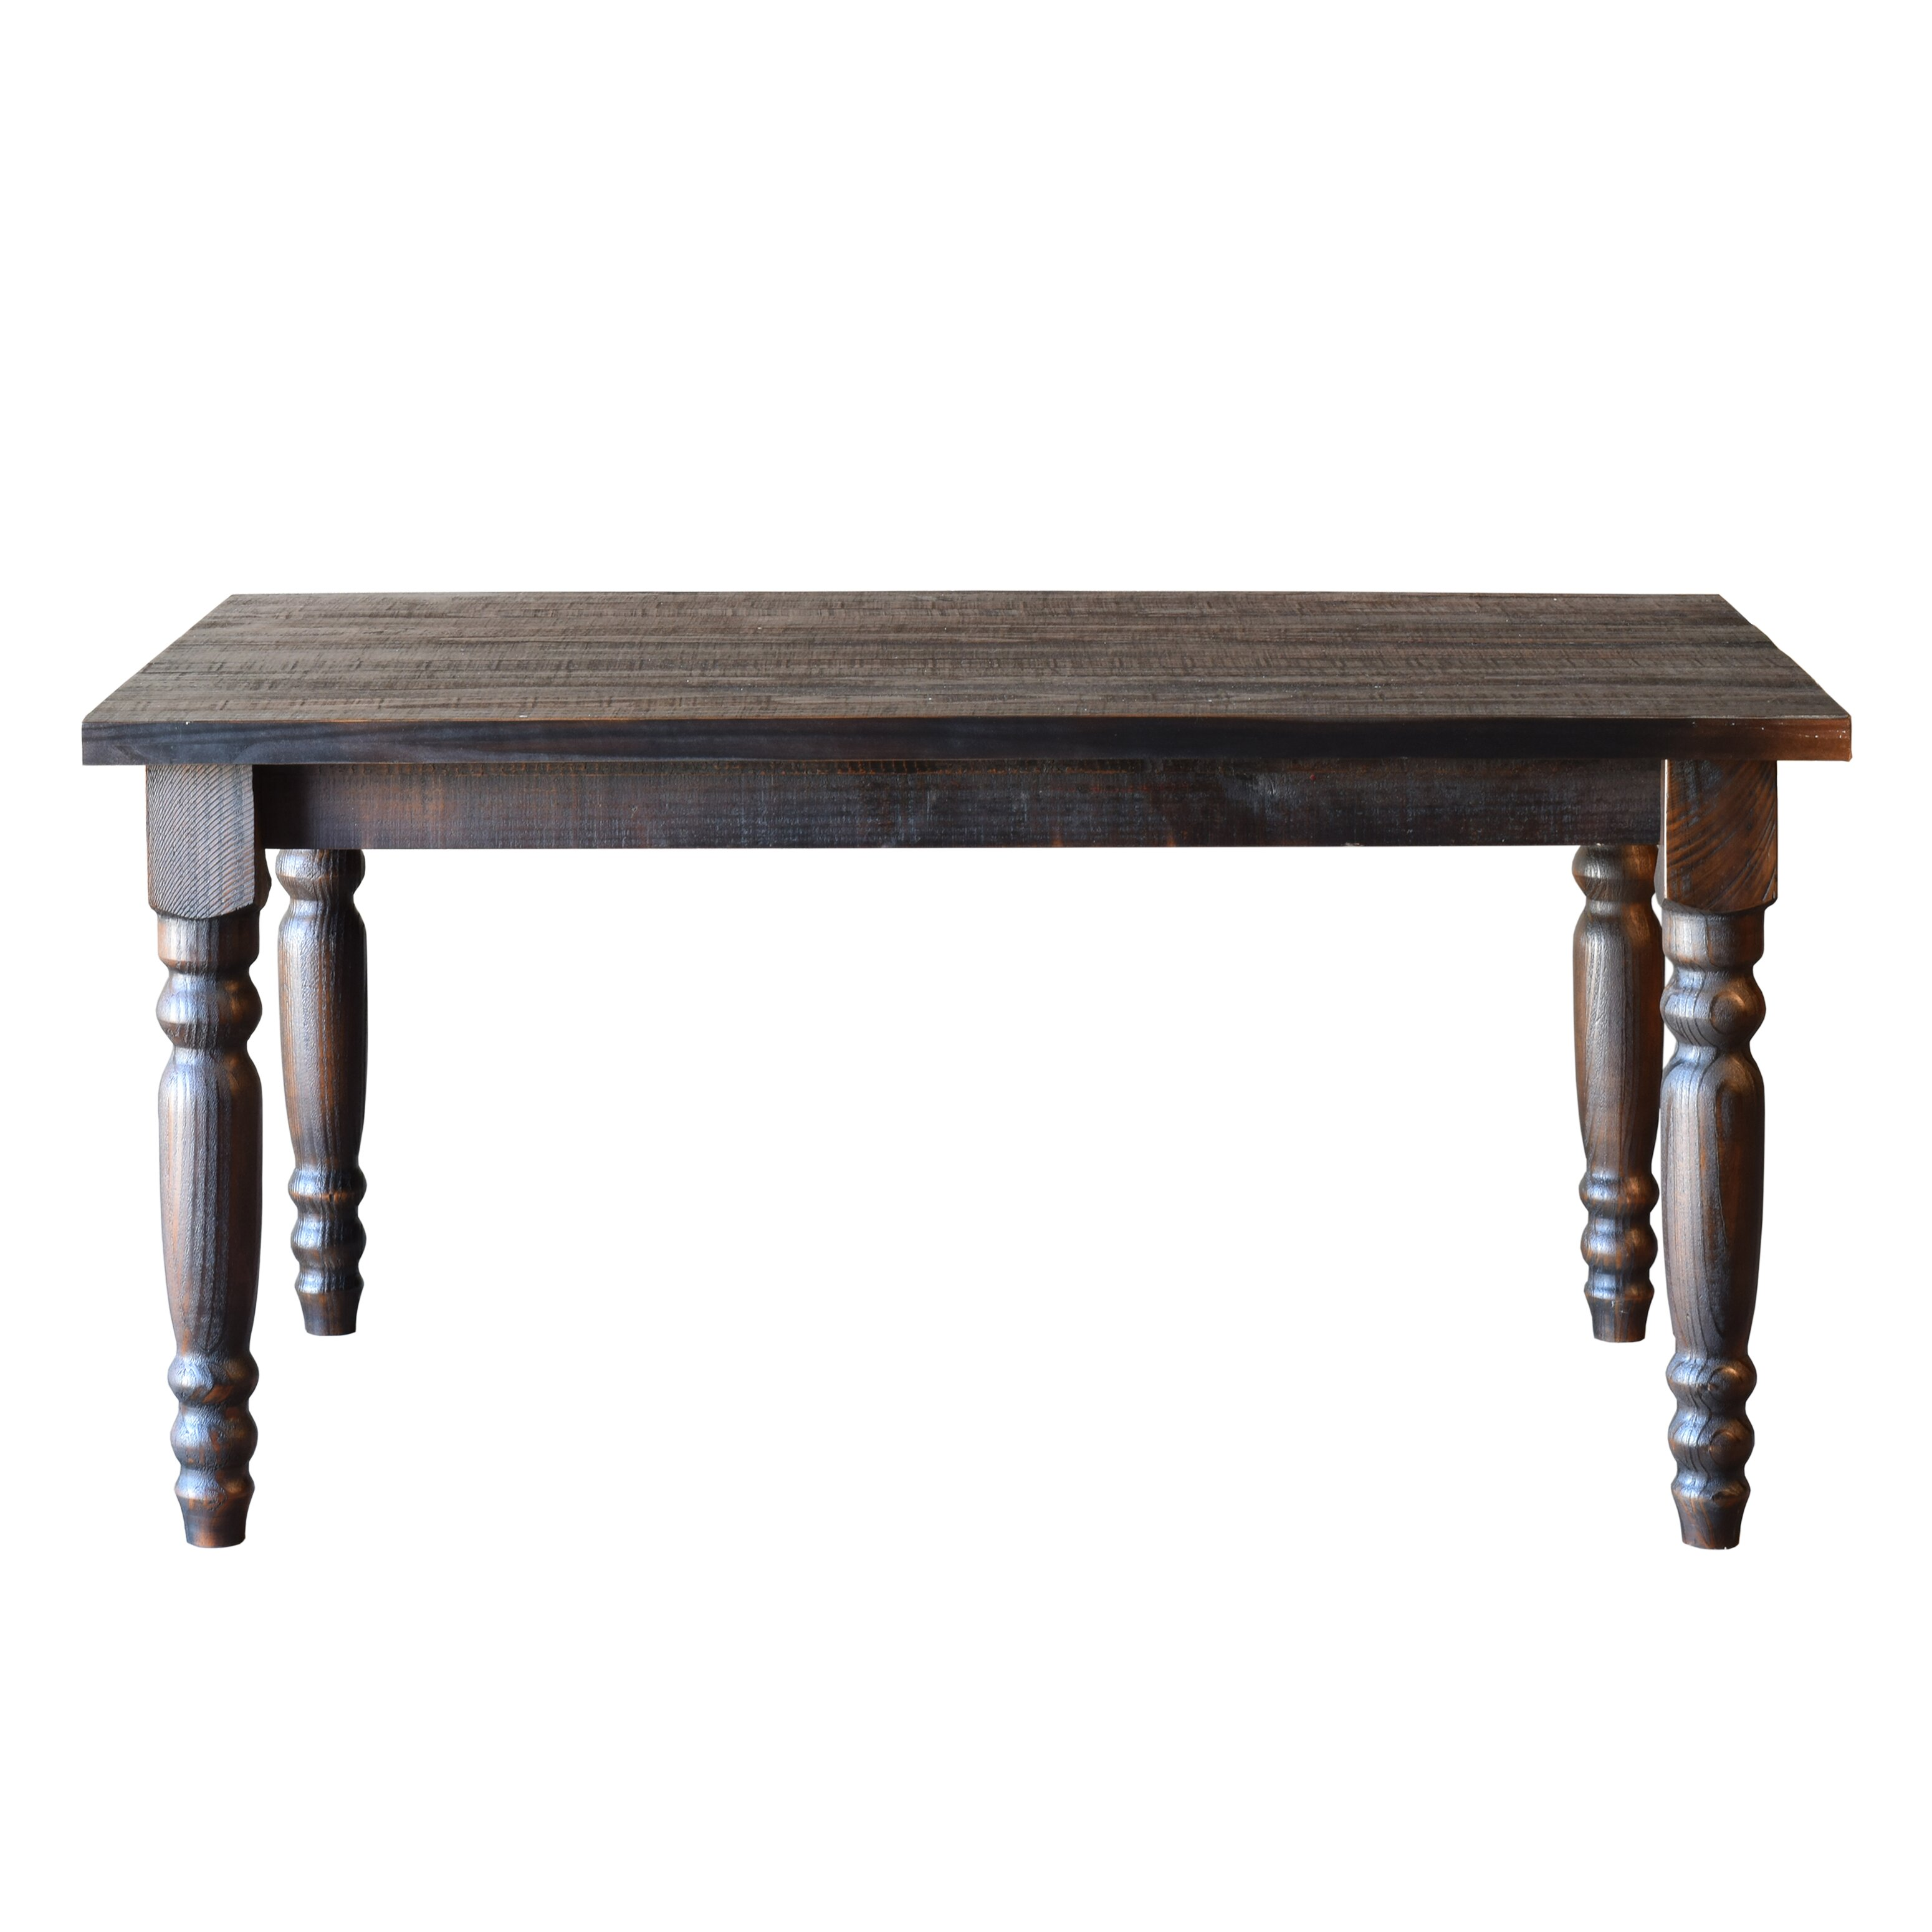 Grain wood furniture valerie dining table reviews wayfair Best wood for dining table